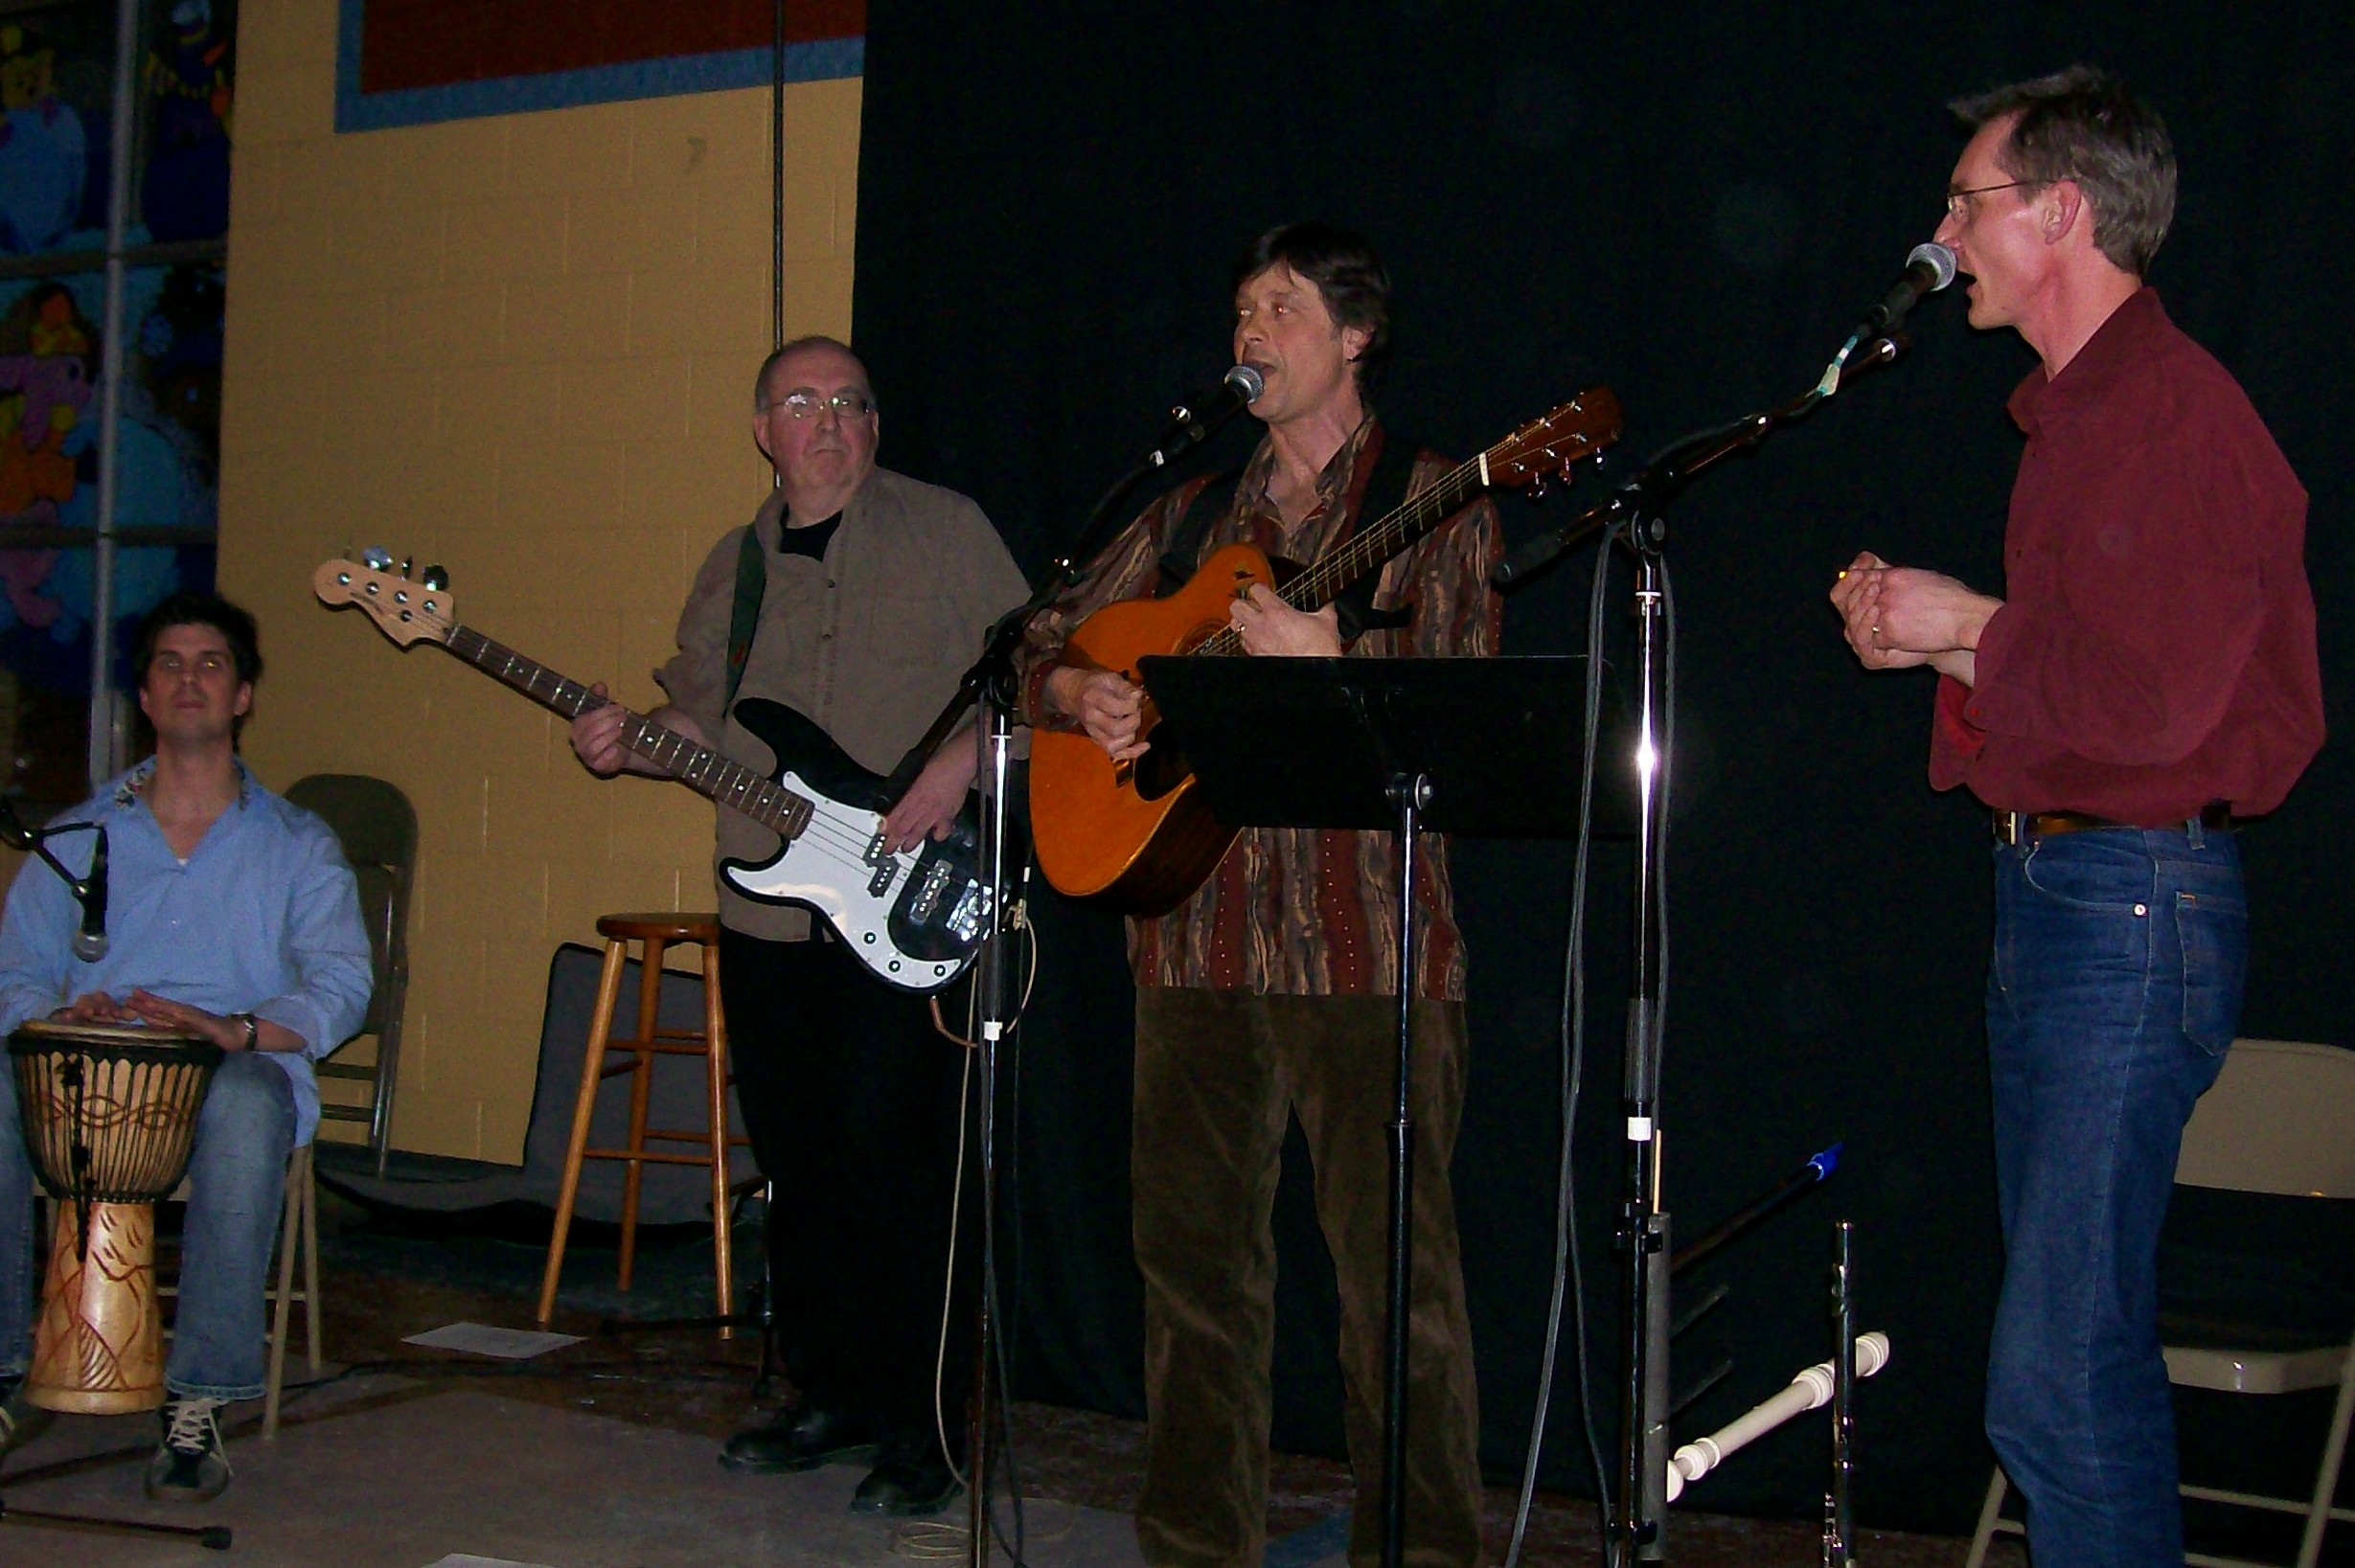 David Marantha and Band at the Balck Walnut Folk Club February 16, 2007